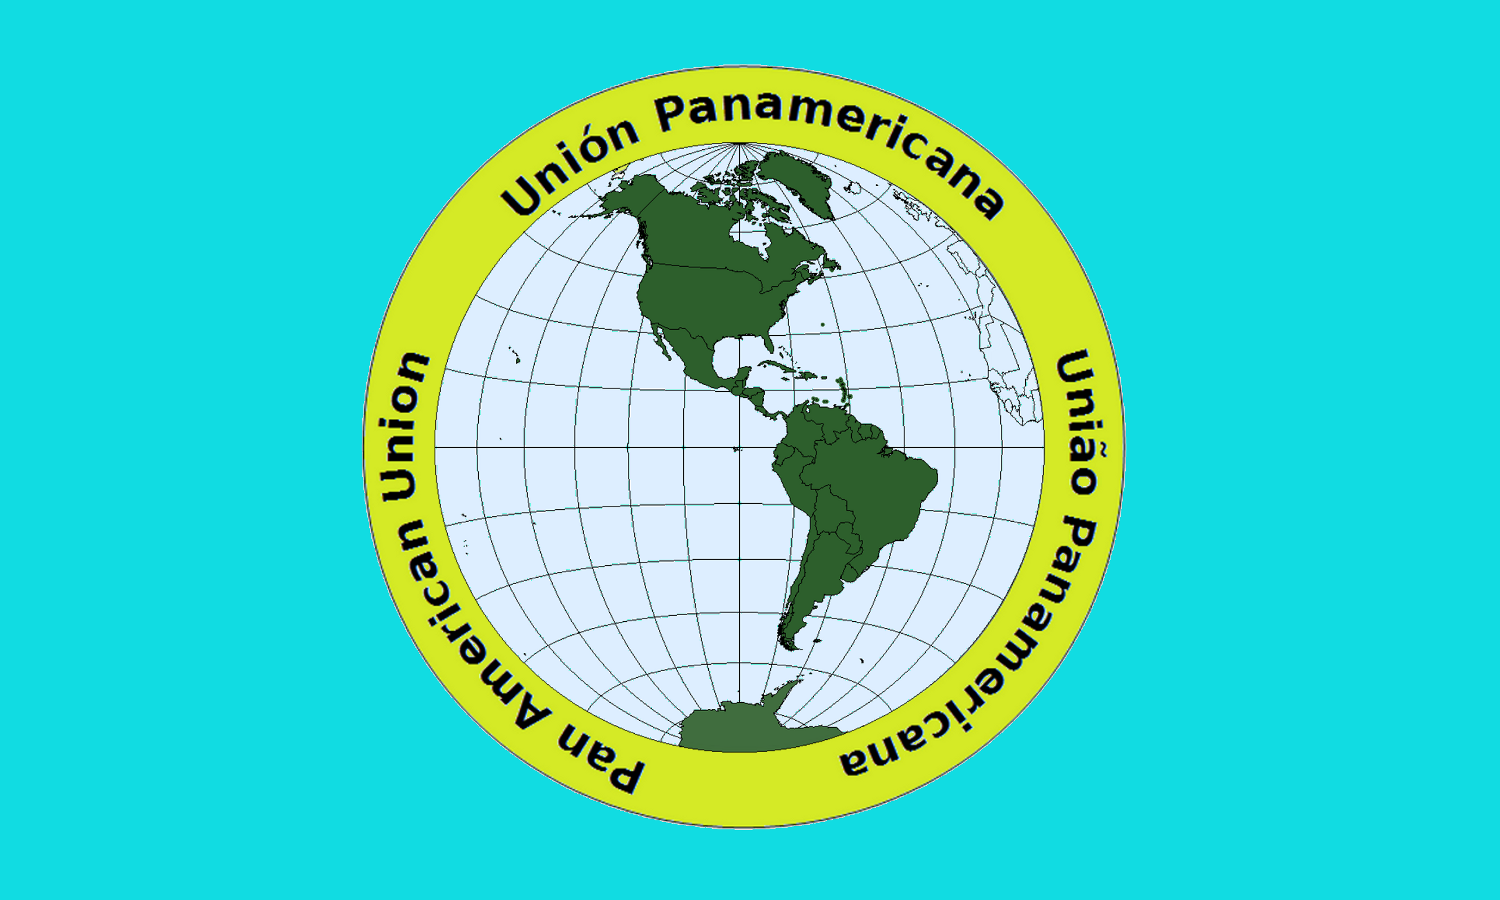 Pan-American Union (Franz&#39;s World) - Alternative History